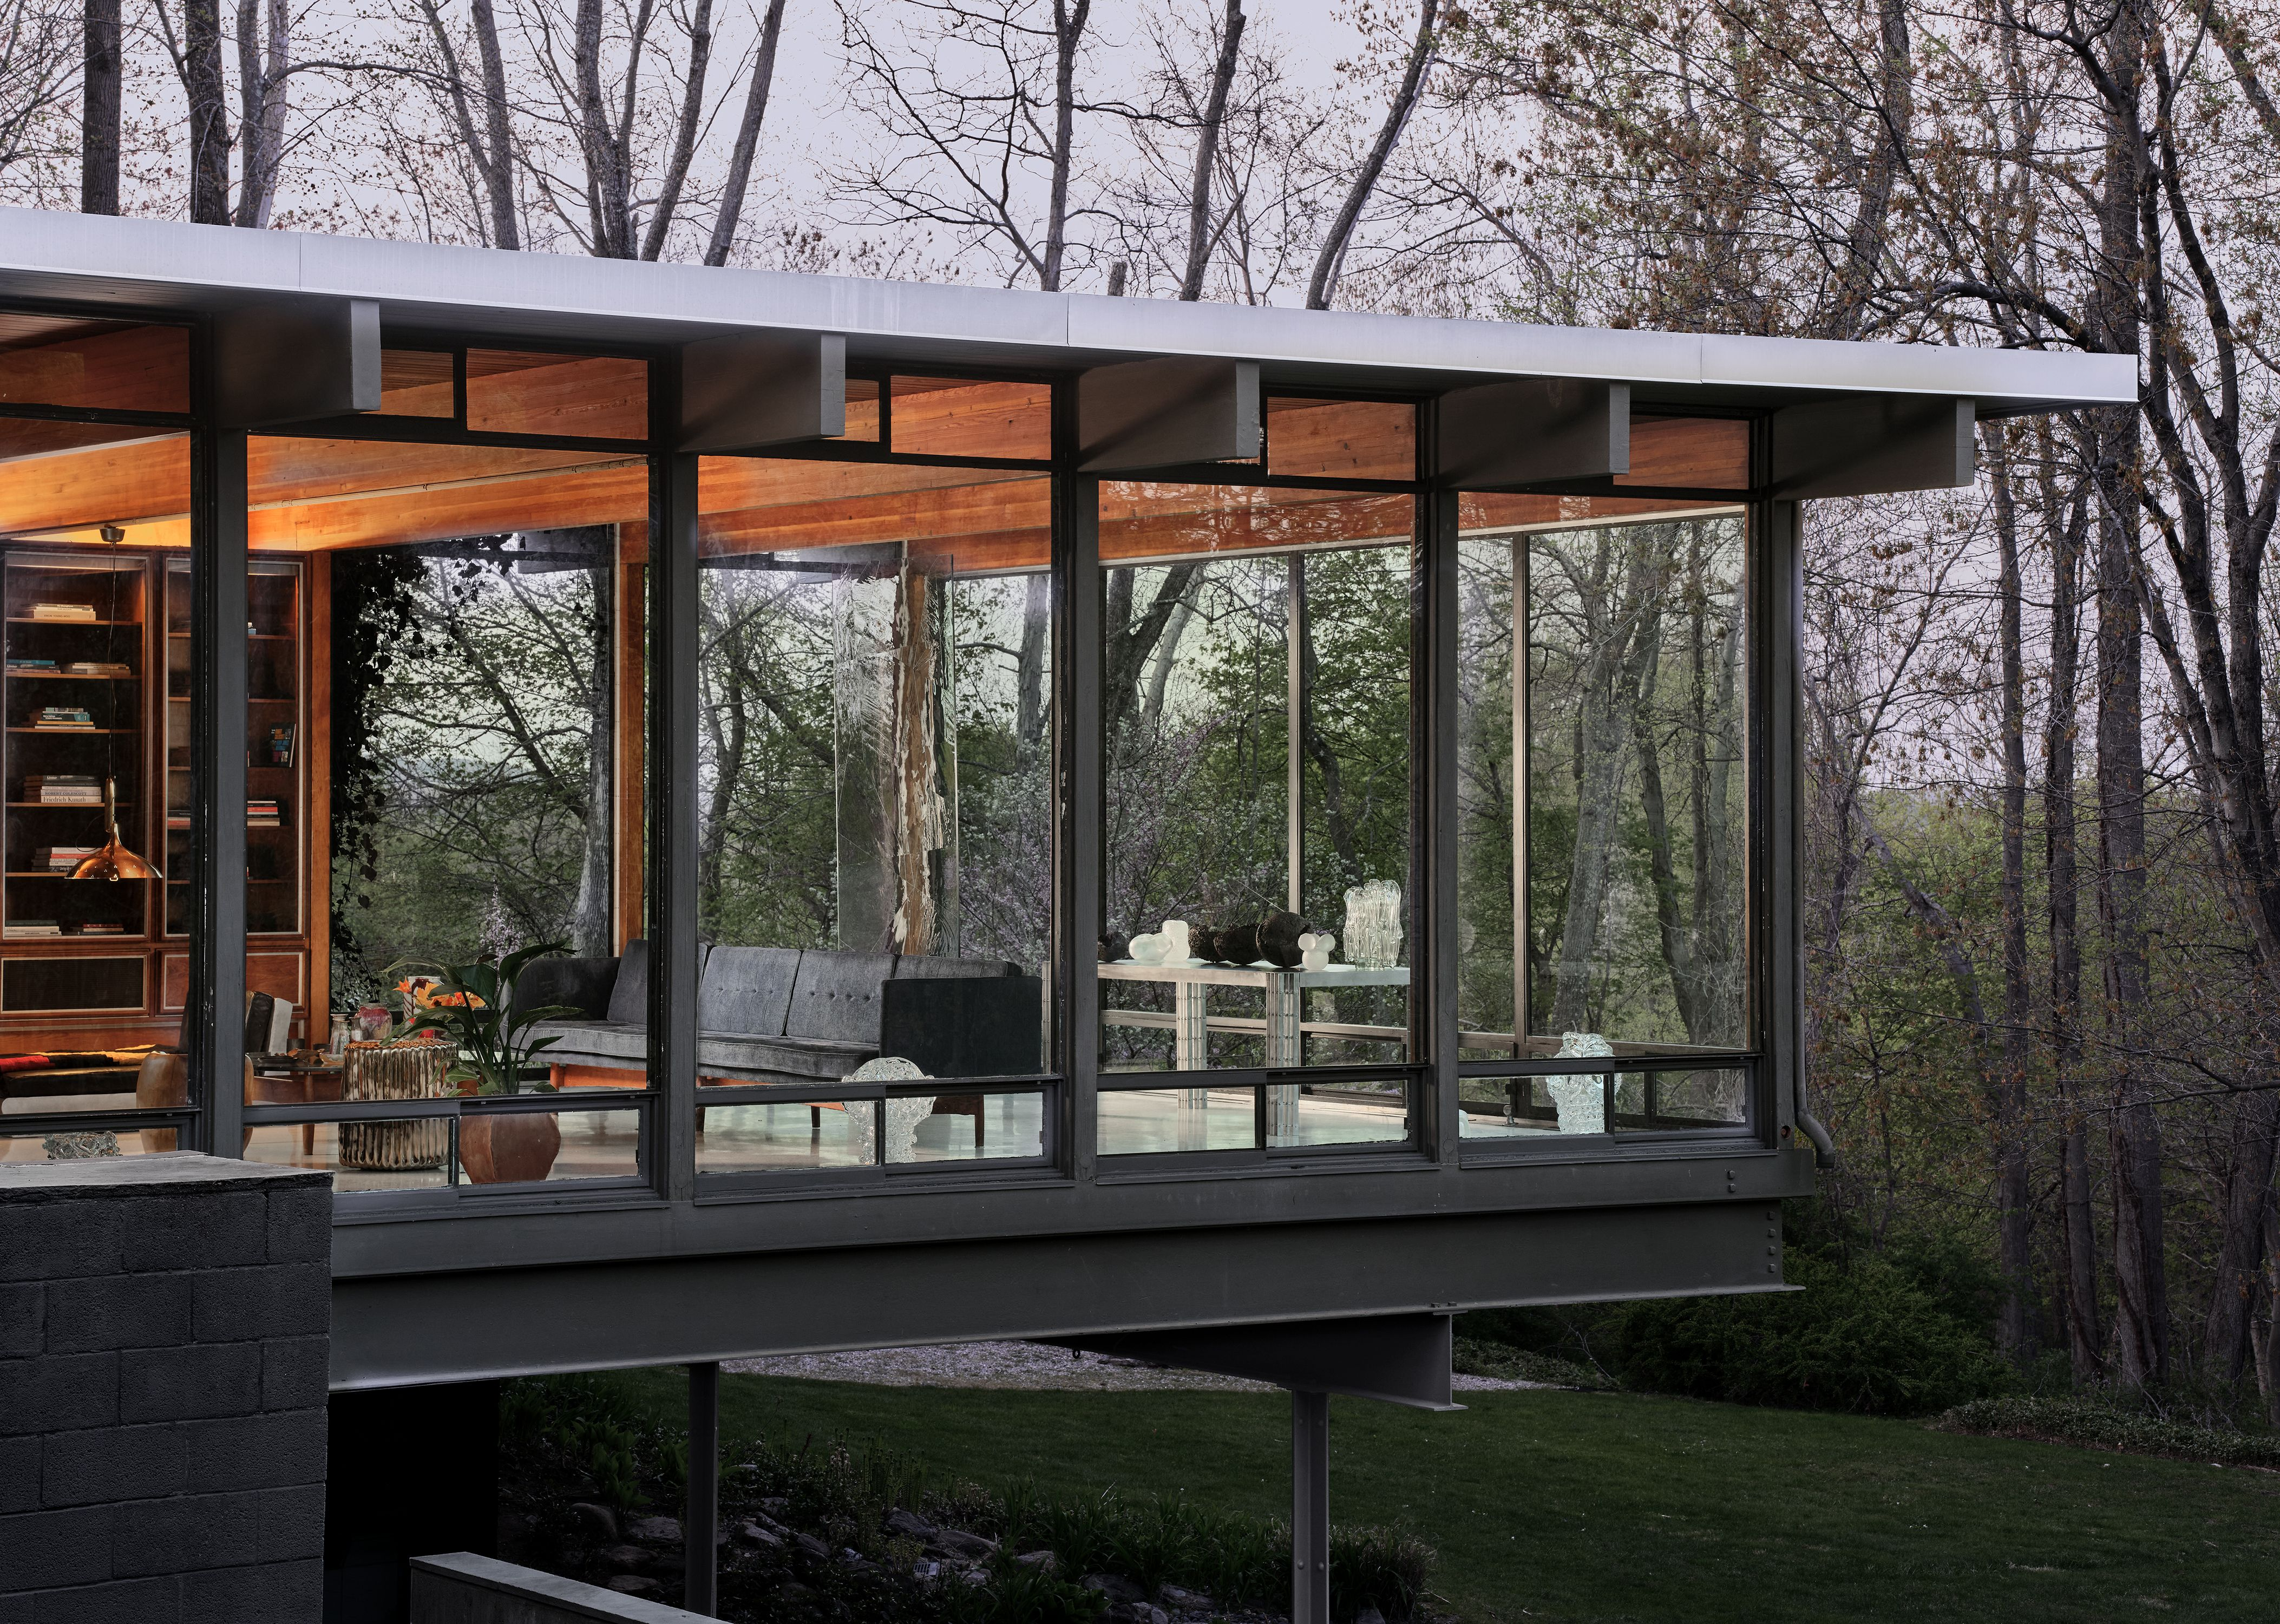 At The Luss House: Blum & Poe, Mendes Wood DM and Object & Thing. The Gerald Luss House, Ossining, New York. Photo by Michael Biondo.